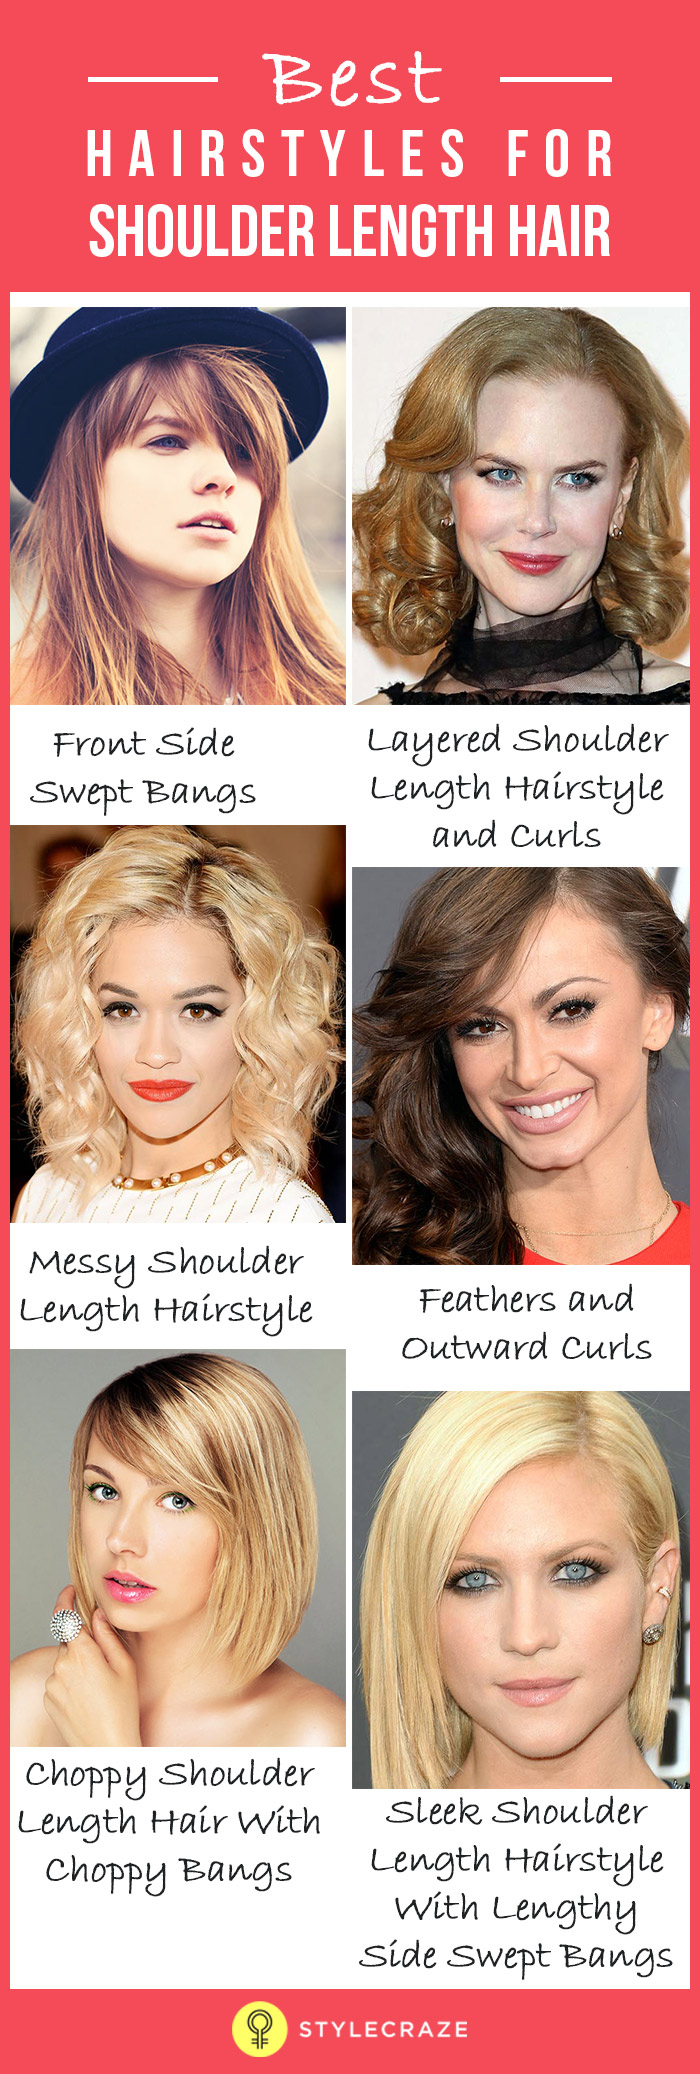 Best-Hairstyles-For-Shoulder-Length-Hair-–-My-Top